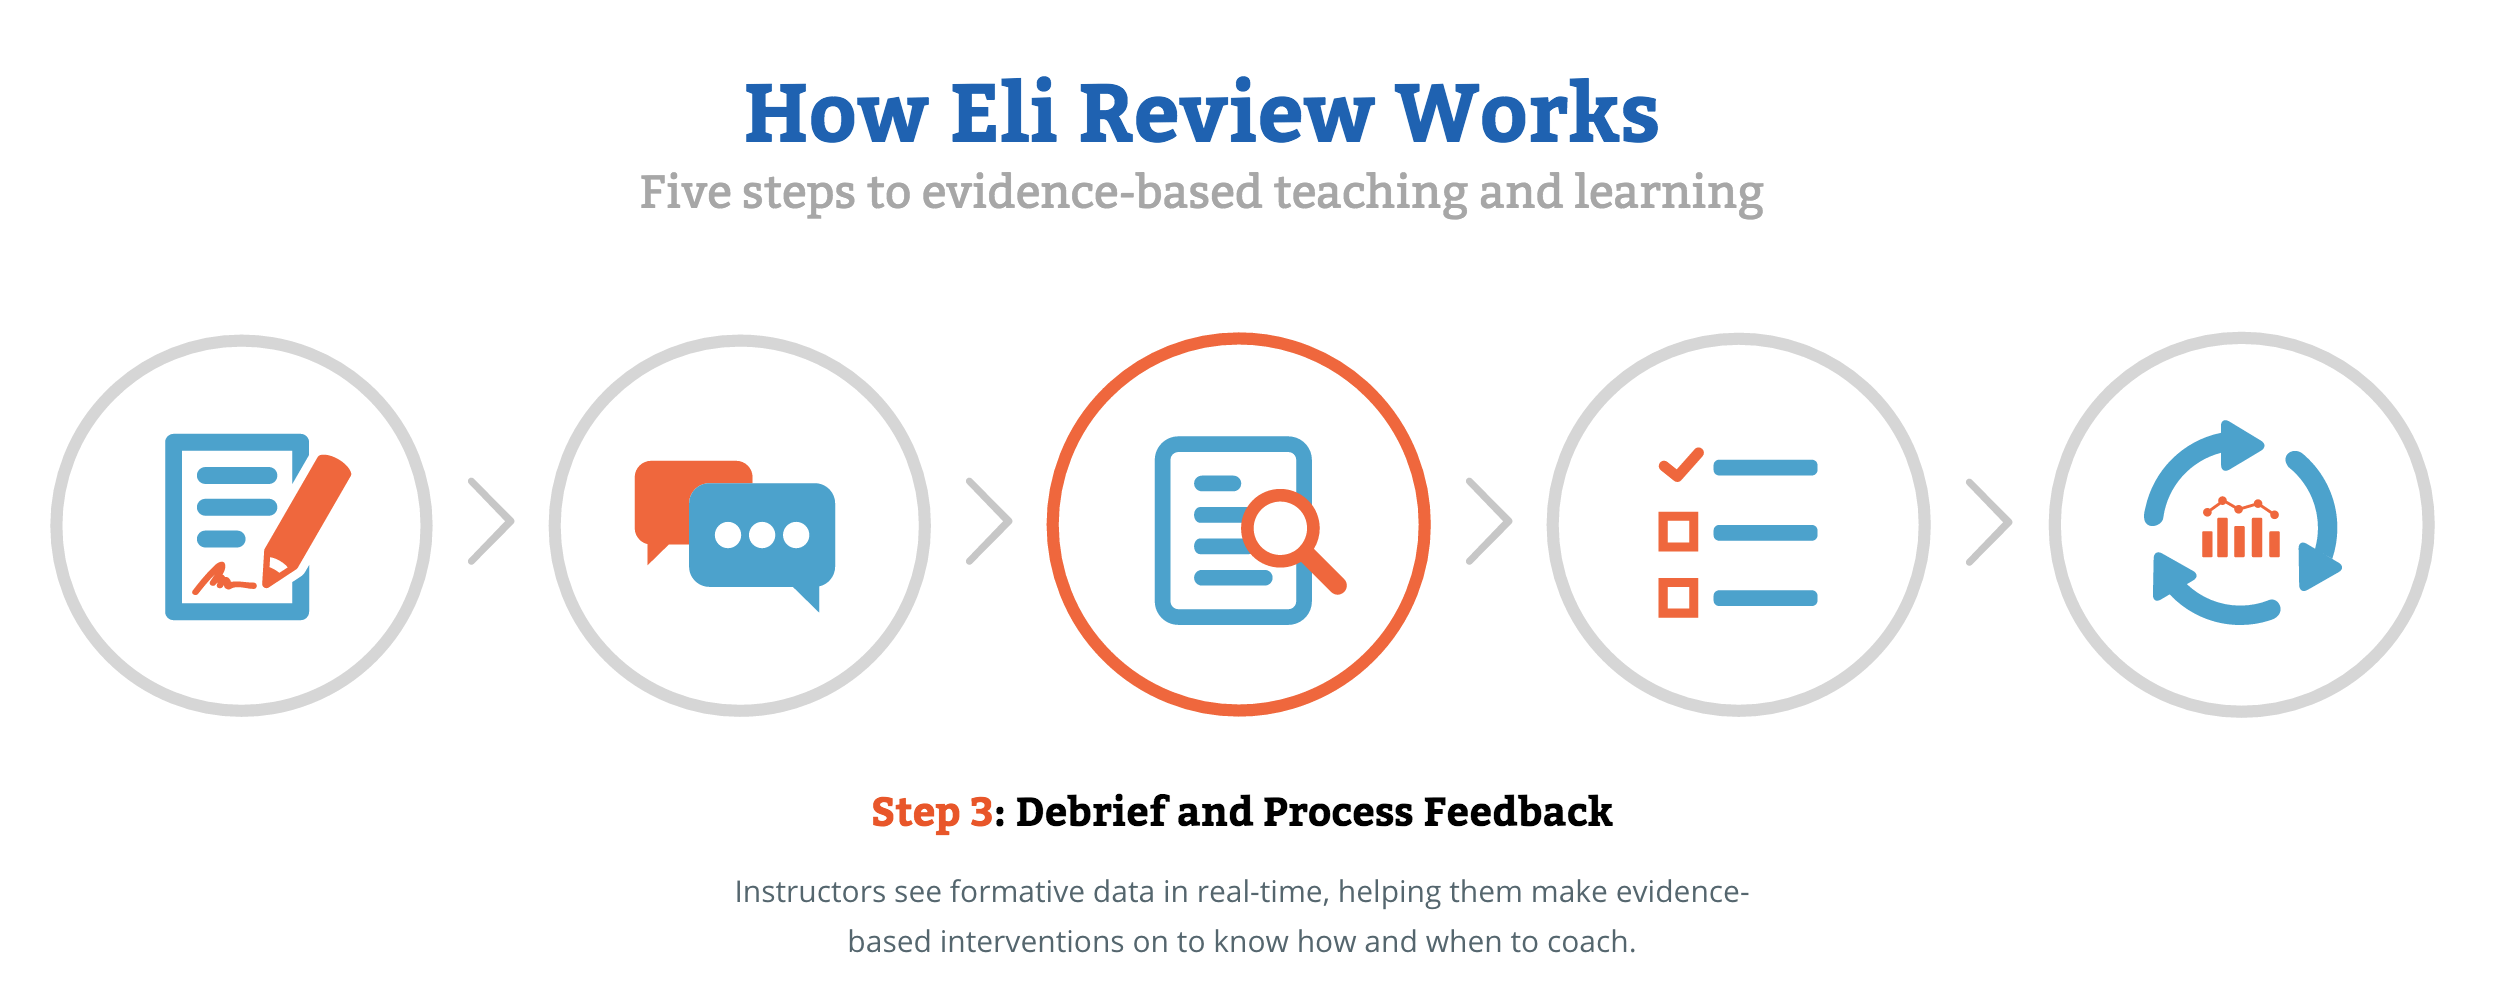 "A screen shot from the Eli Review homepage. The image shows 5 orange and blue circles, each with an icon representing one of 5 steps within the Eli Review process. The third step, ""Debrief and Process Feedback,"" is highlighted."